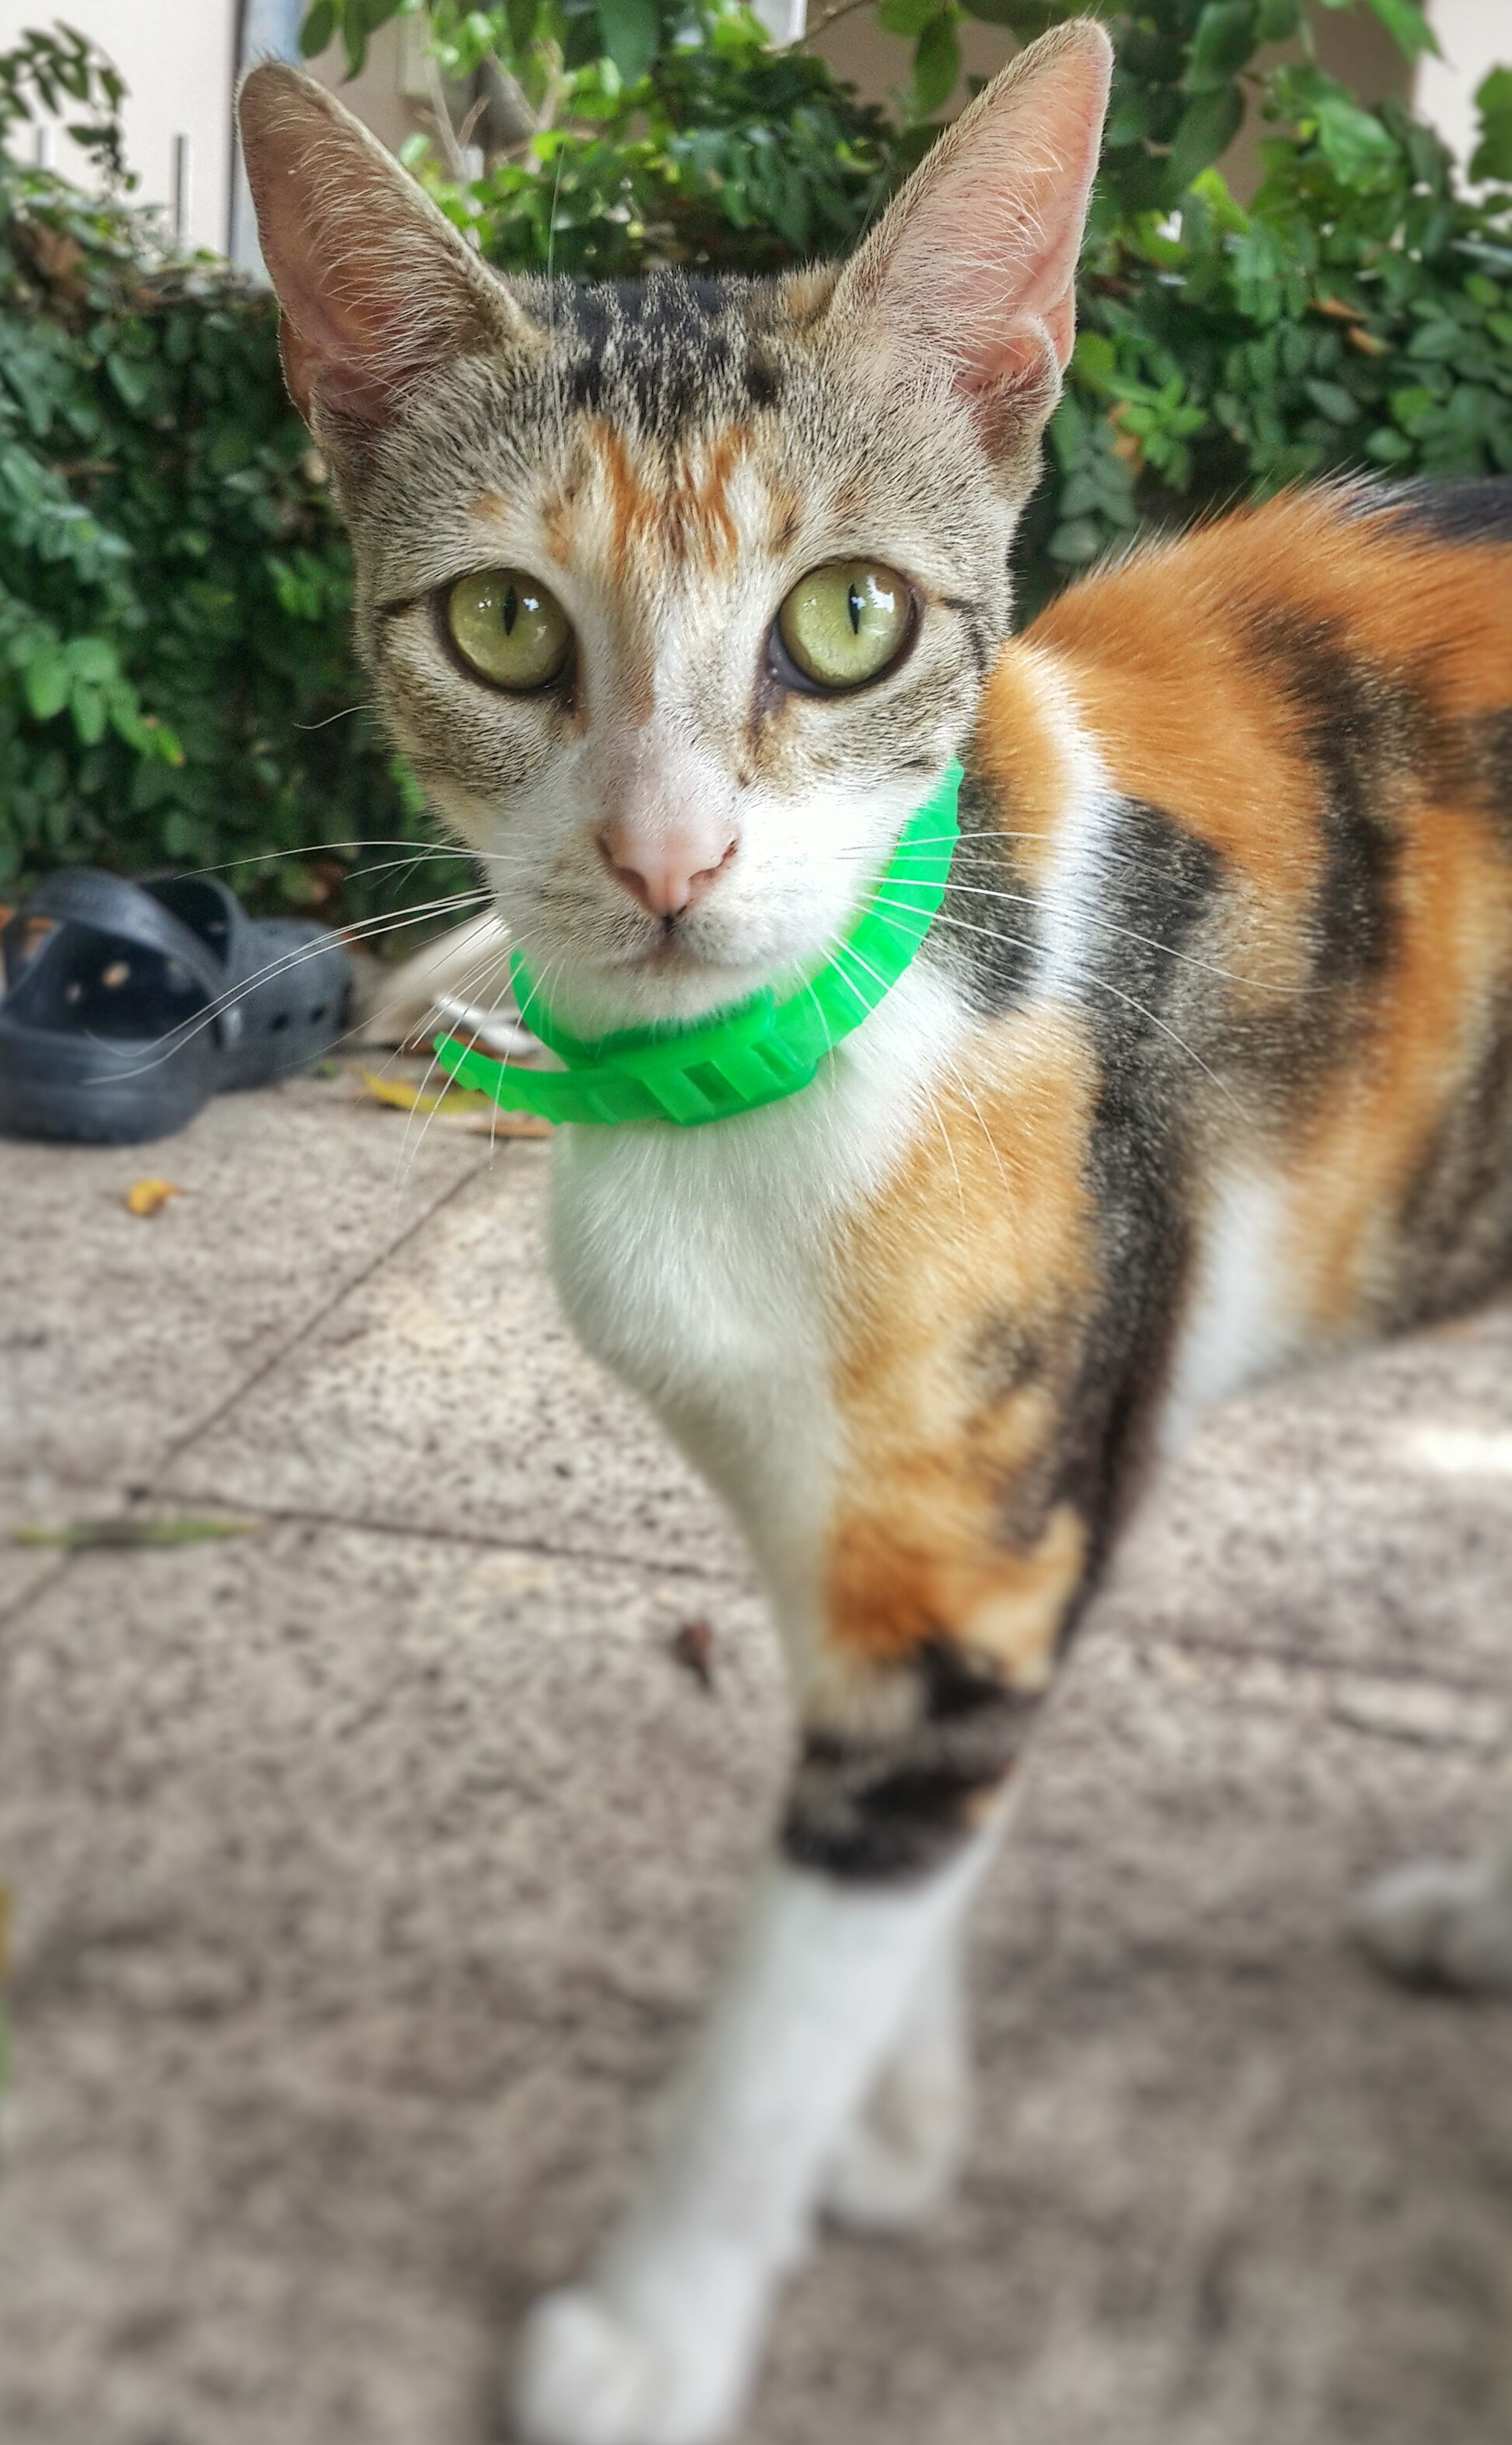 animal themes, one animal, pets, domestic animals, domestic cat, mammal, cat, portrait, looking at camera, feline, whisker, focus on foreground, selective focus, close-up, street, alertness, front view, sitting, animal head, day